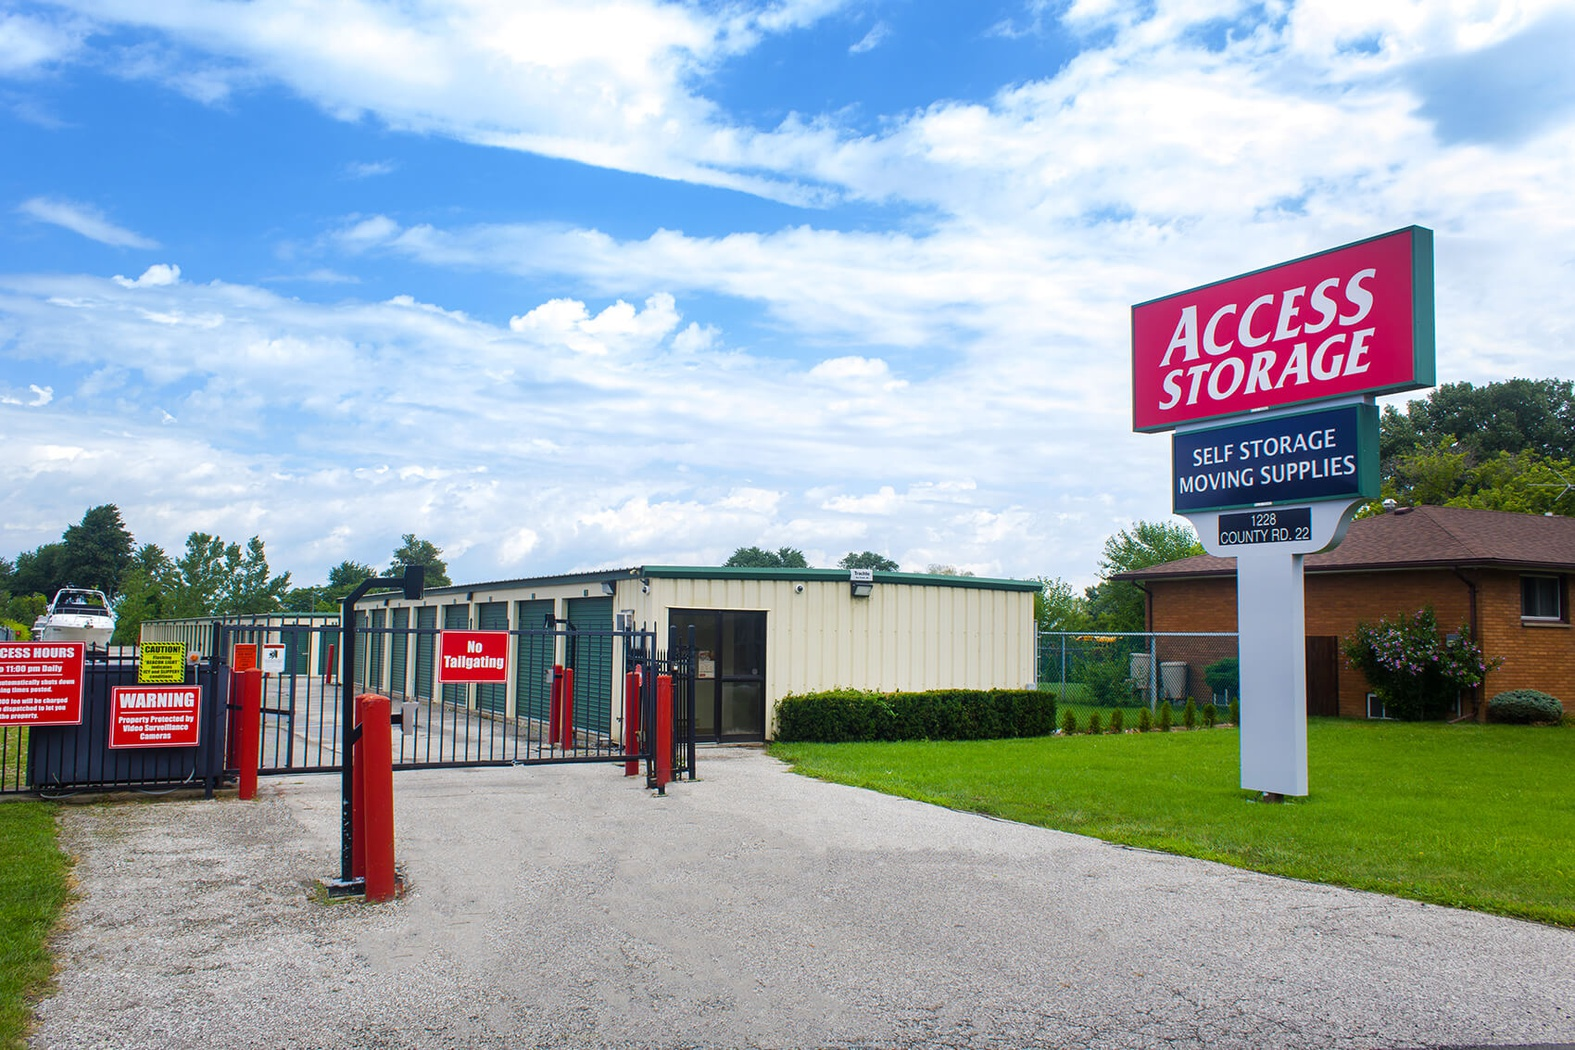 Rent Essex storage units at 578 Talbot Road #34 Lakeshore. We offer a wide-range of affordable self storage units and your first 4 weeks are free!